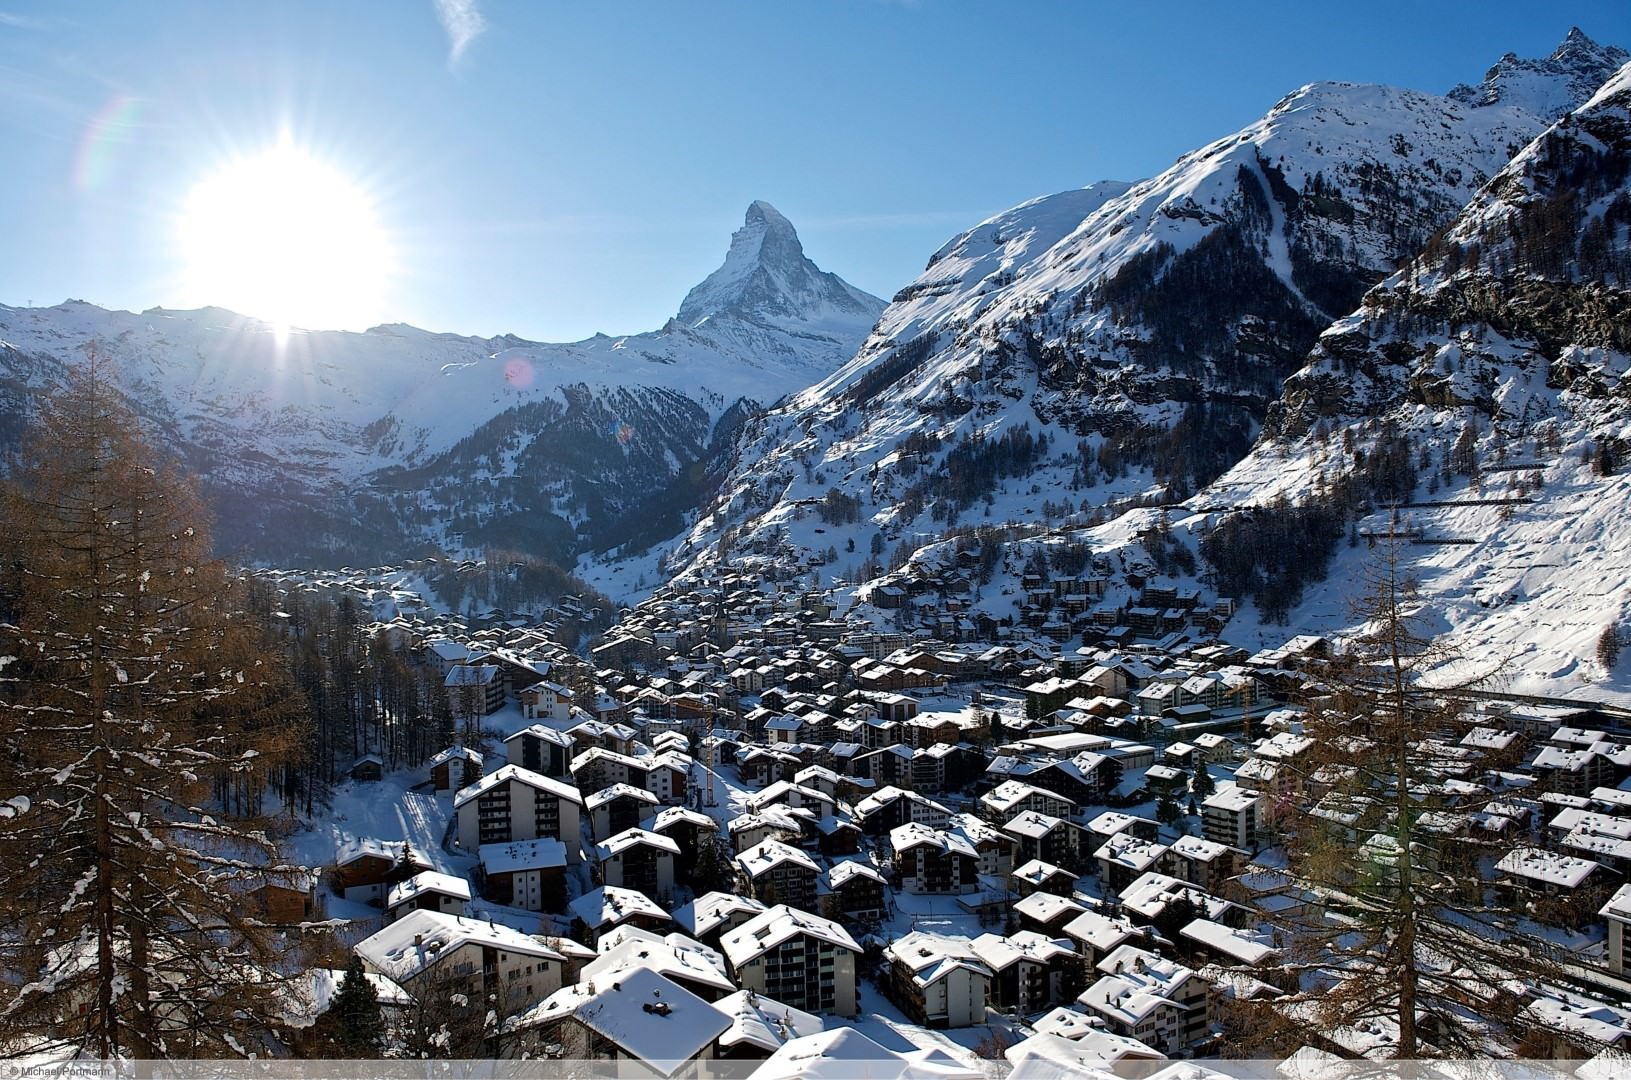 wintersport en aanbiedingen in Zermatt